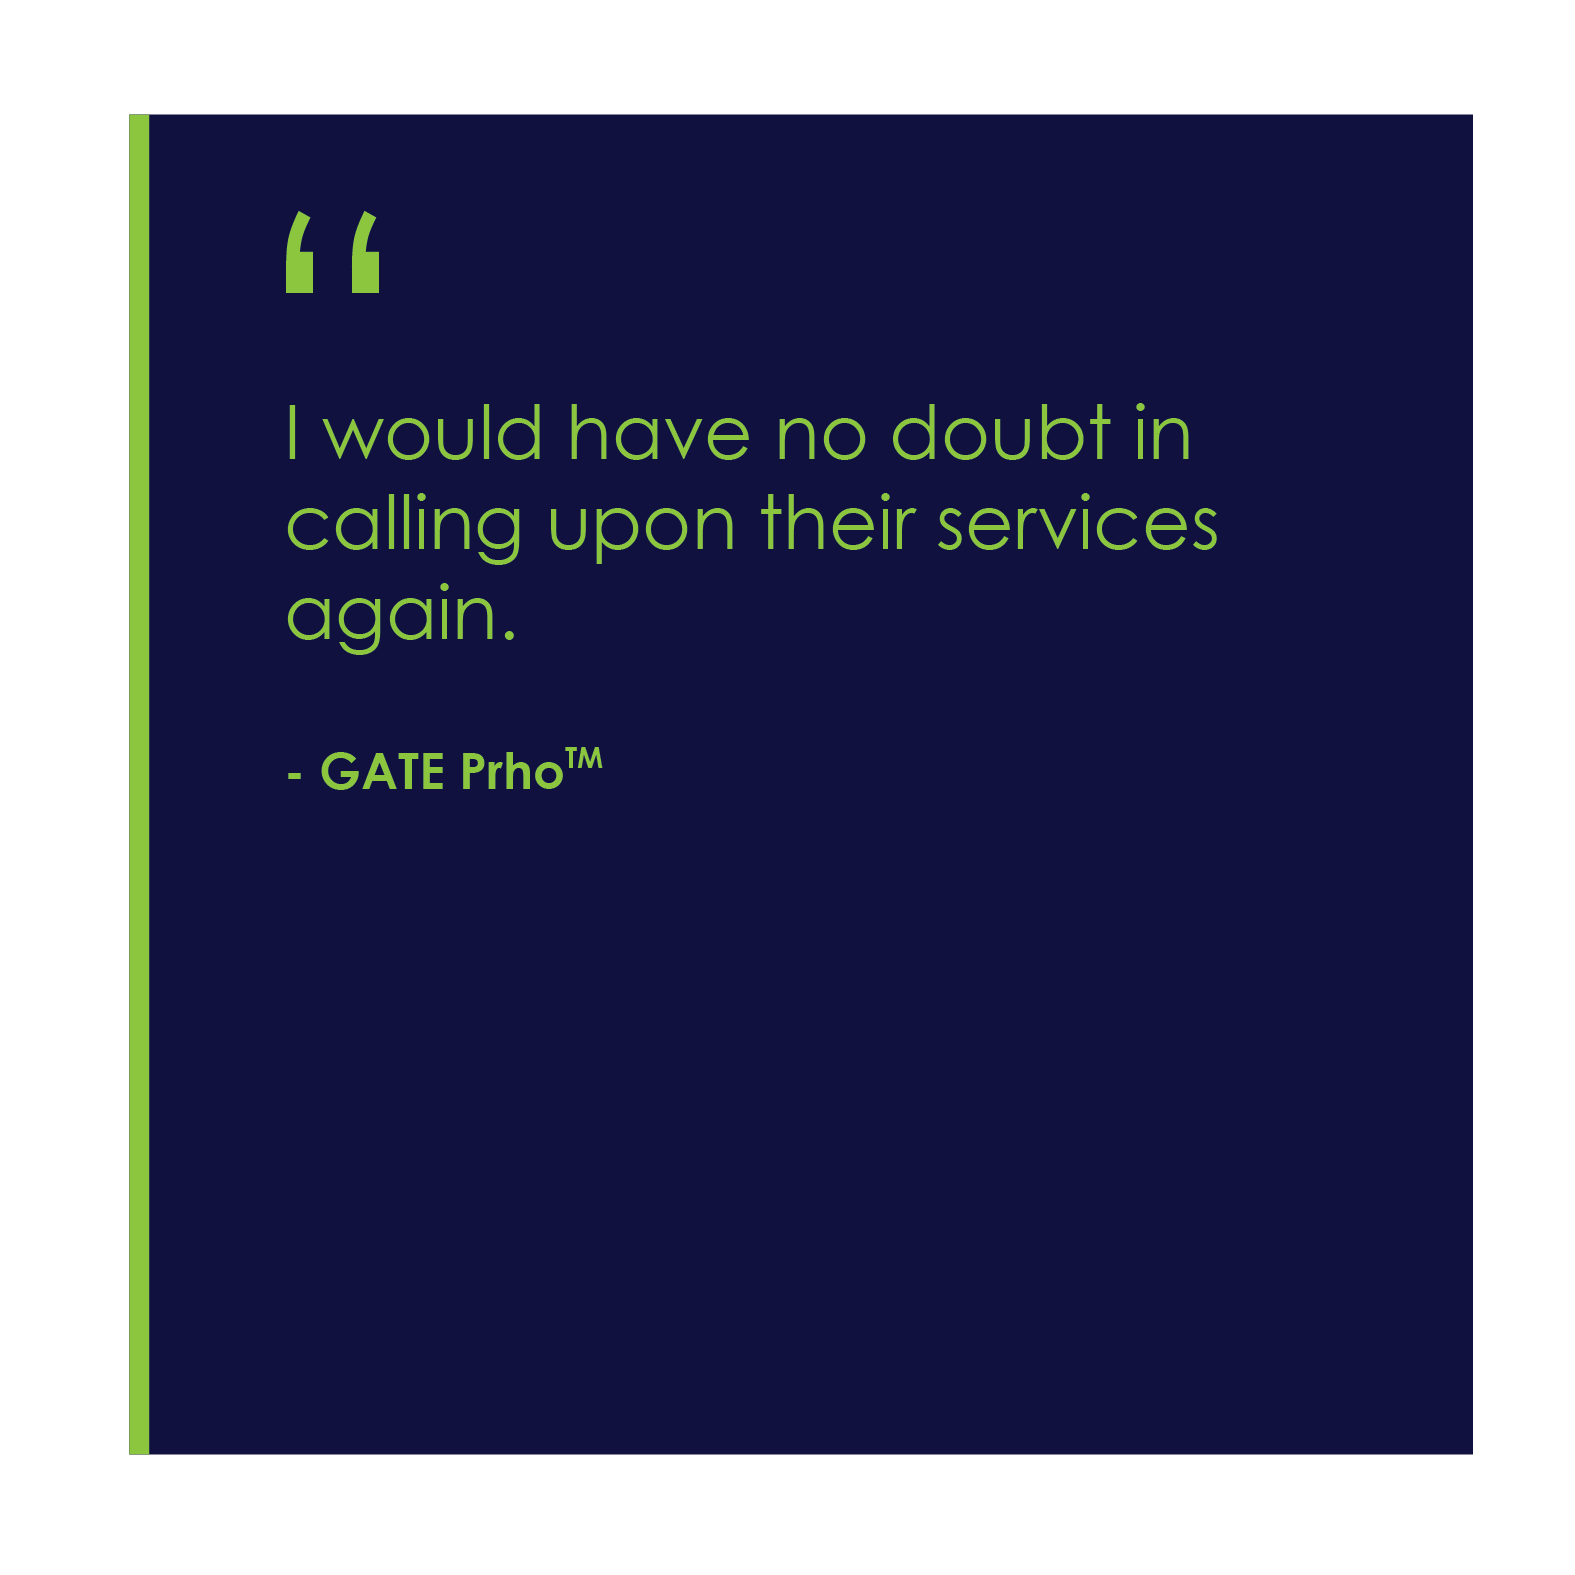 GATE Energy Website Quotes-14.png